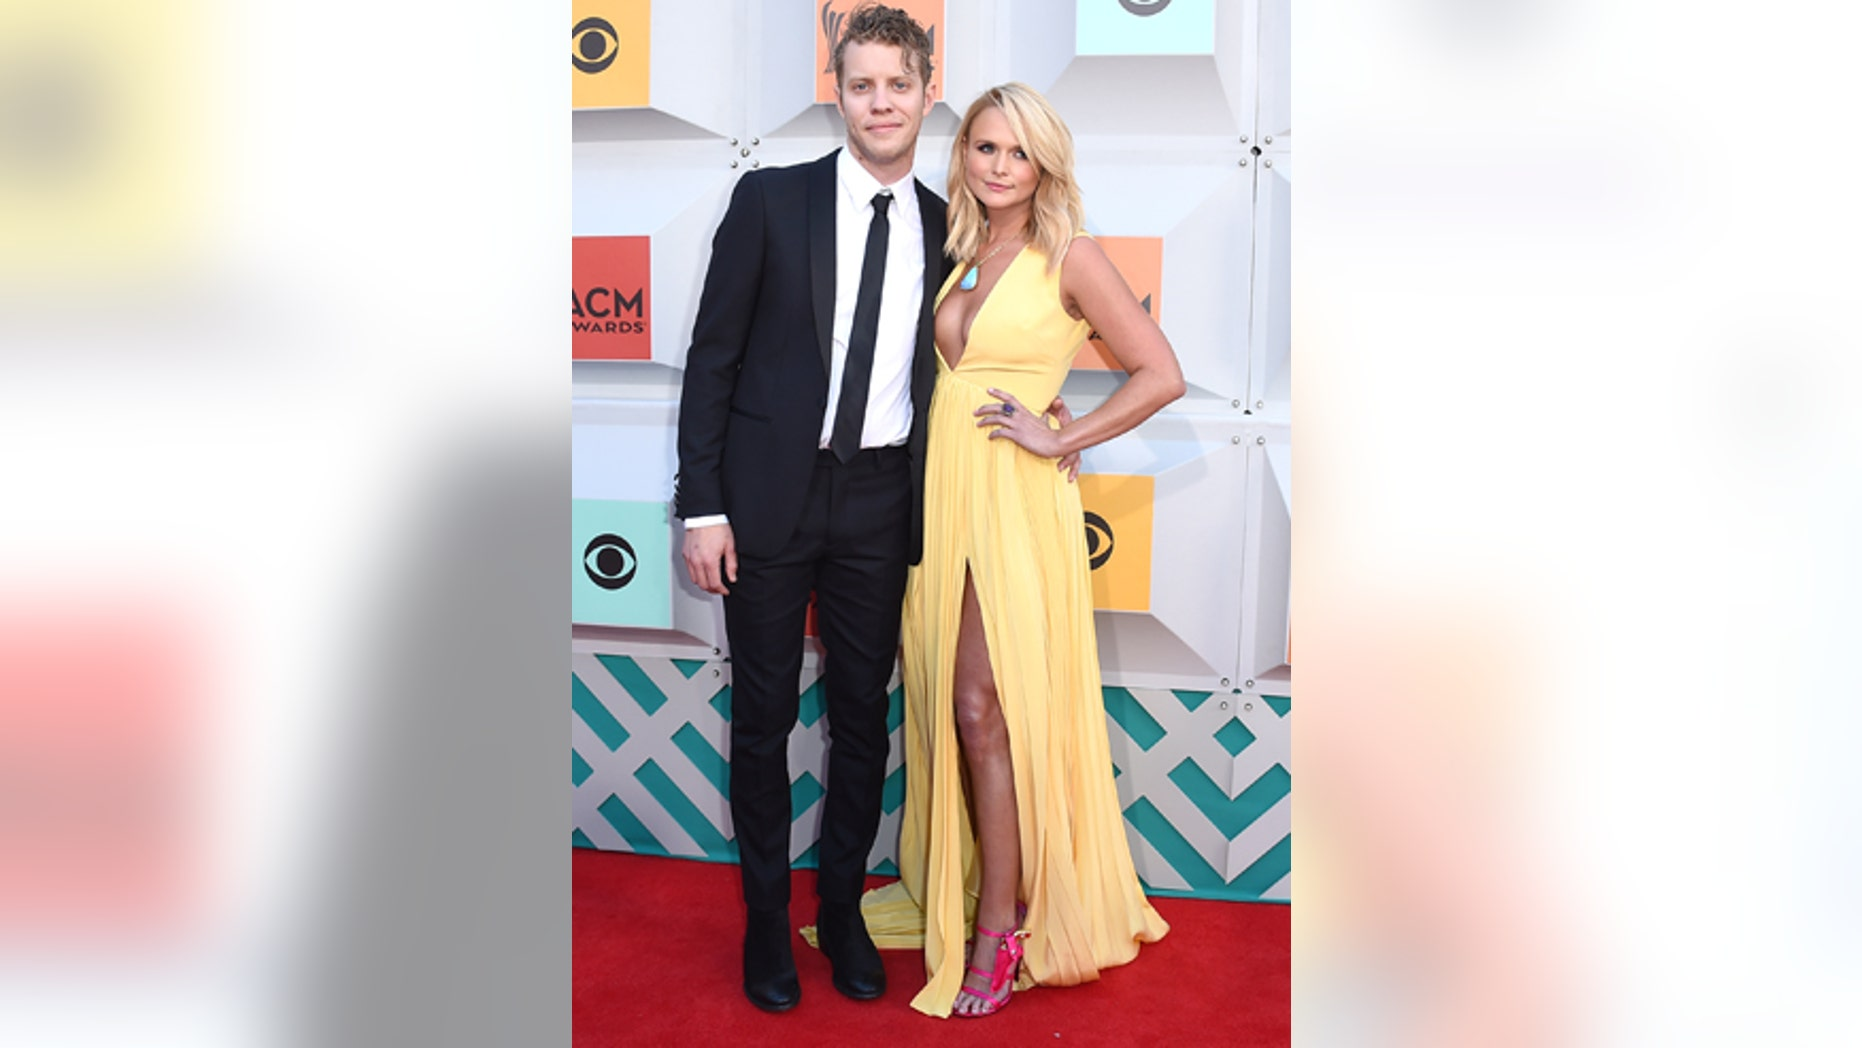 Anderson East, left, and Miranda Lambert arrive at the 51st annual Academy of Country Music Awards at the MGM Grand Garden Arena on Sunday, April 3, 2016, in Las Vegas.